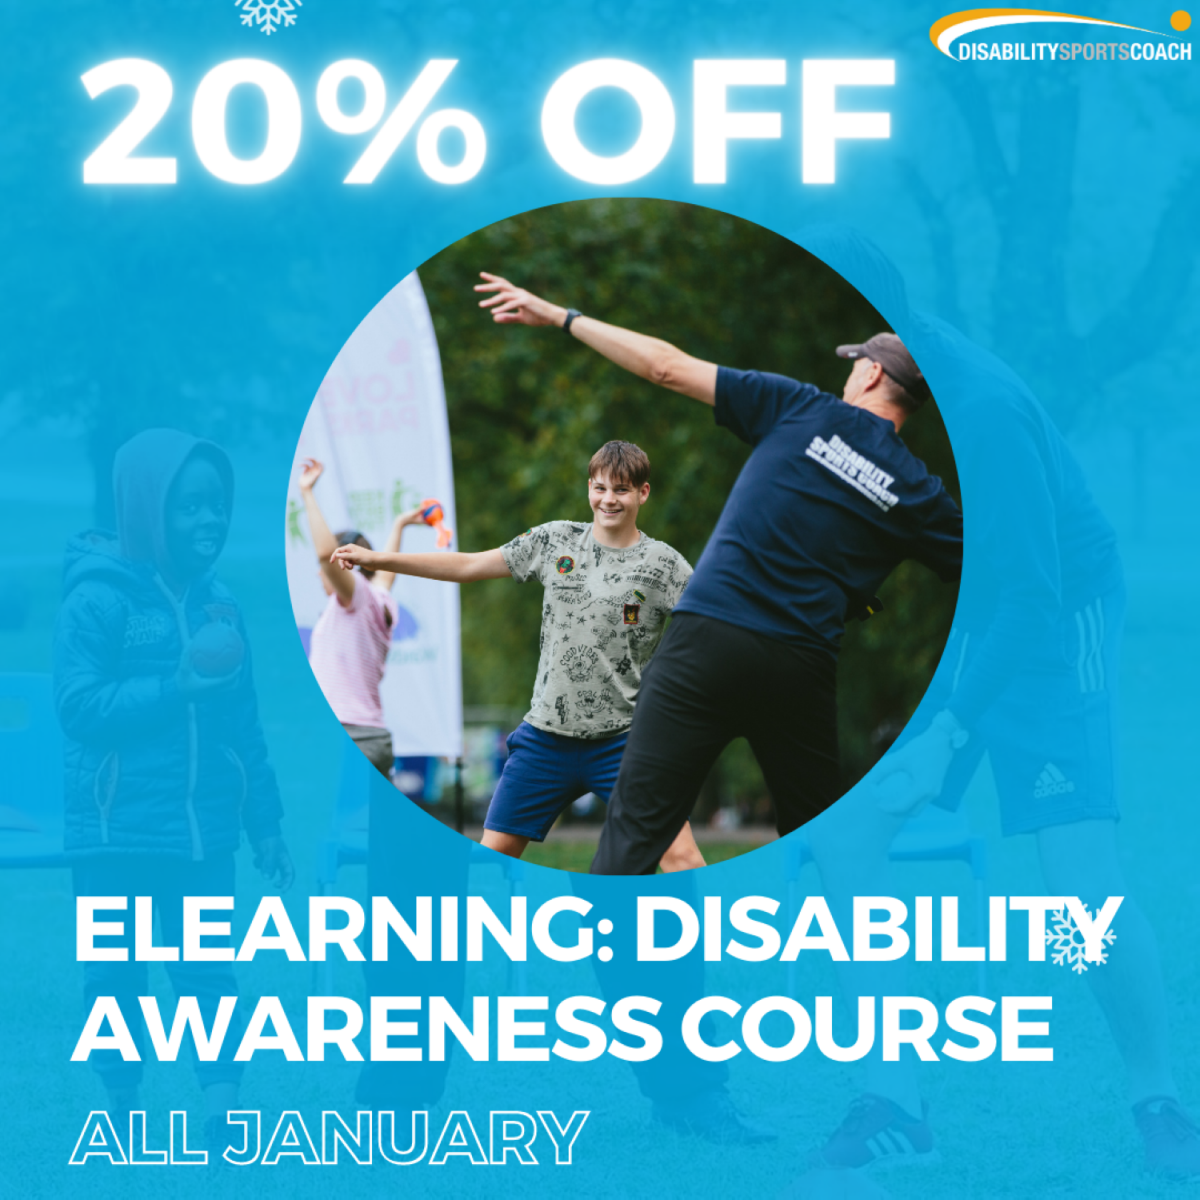 Disability Awareness Elearning Course - 20% off